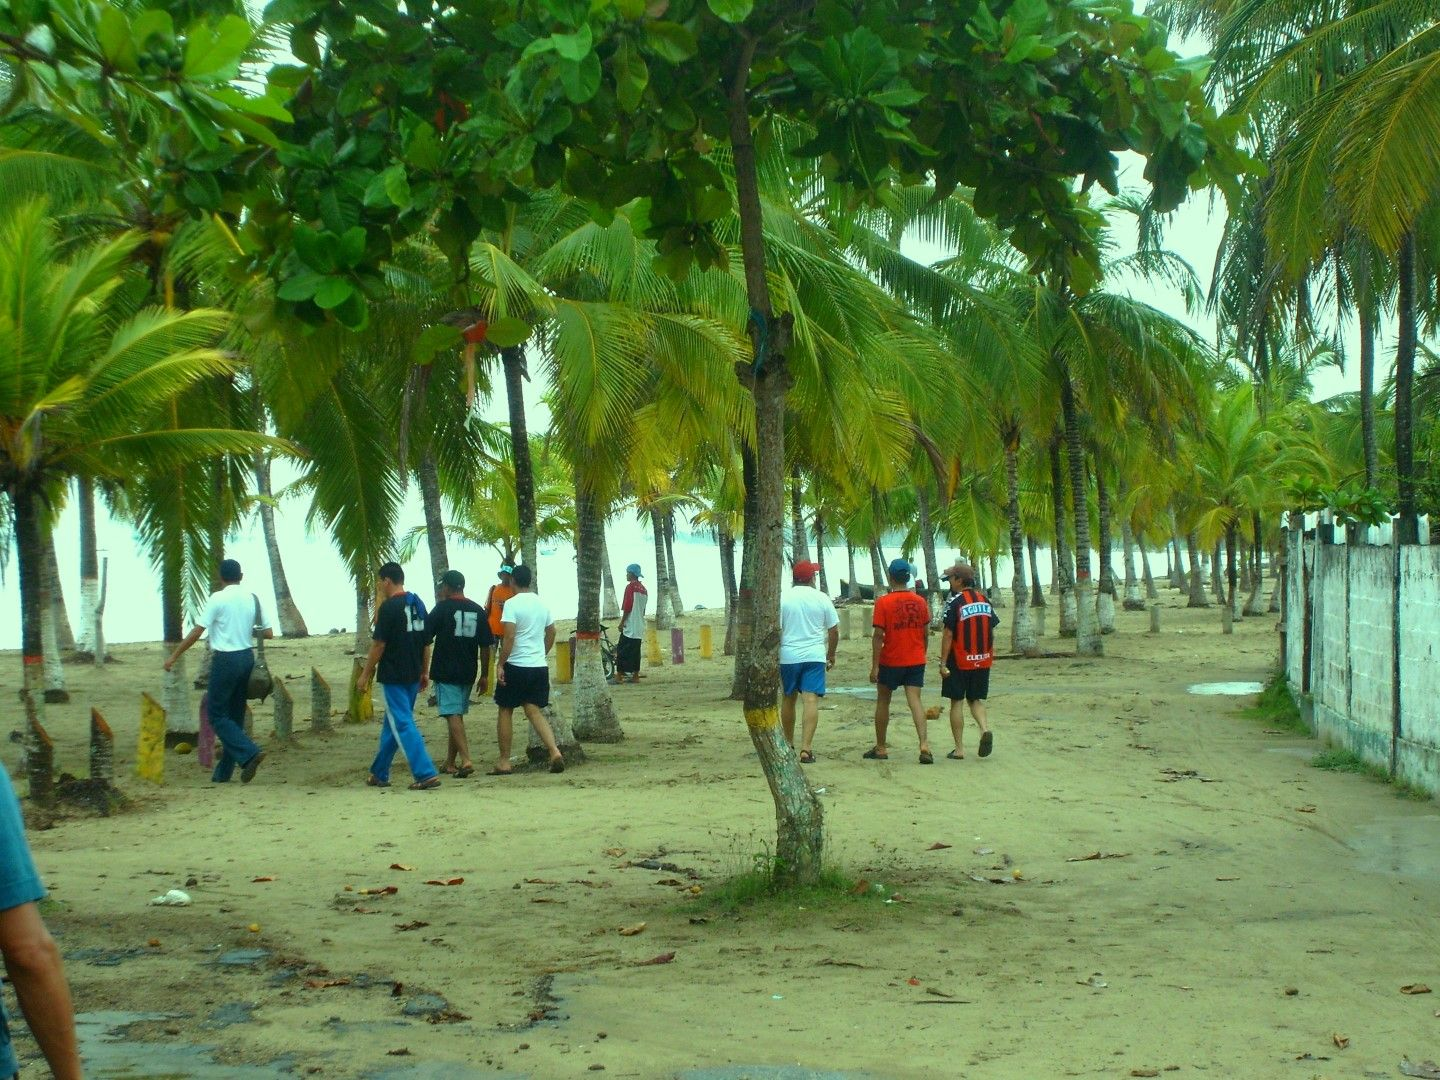 A group of people walking among some palm tress in Tolu